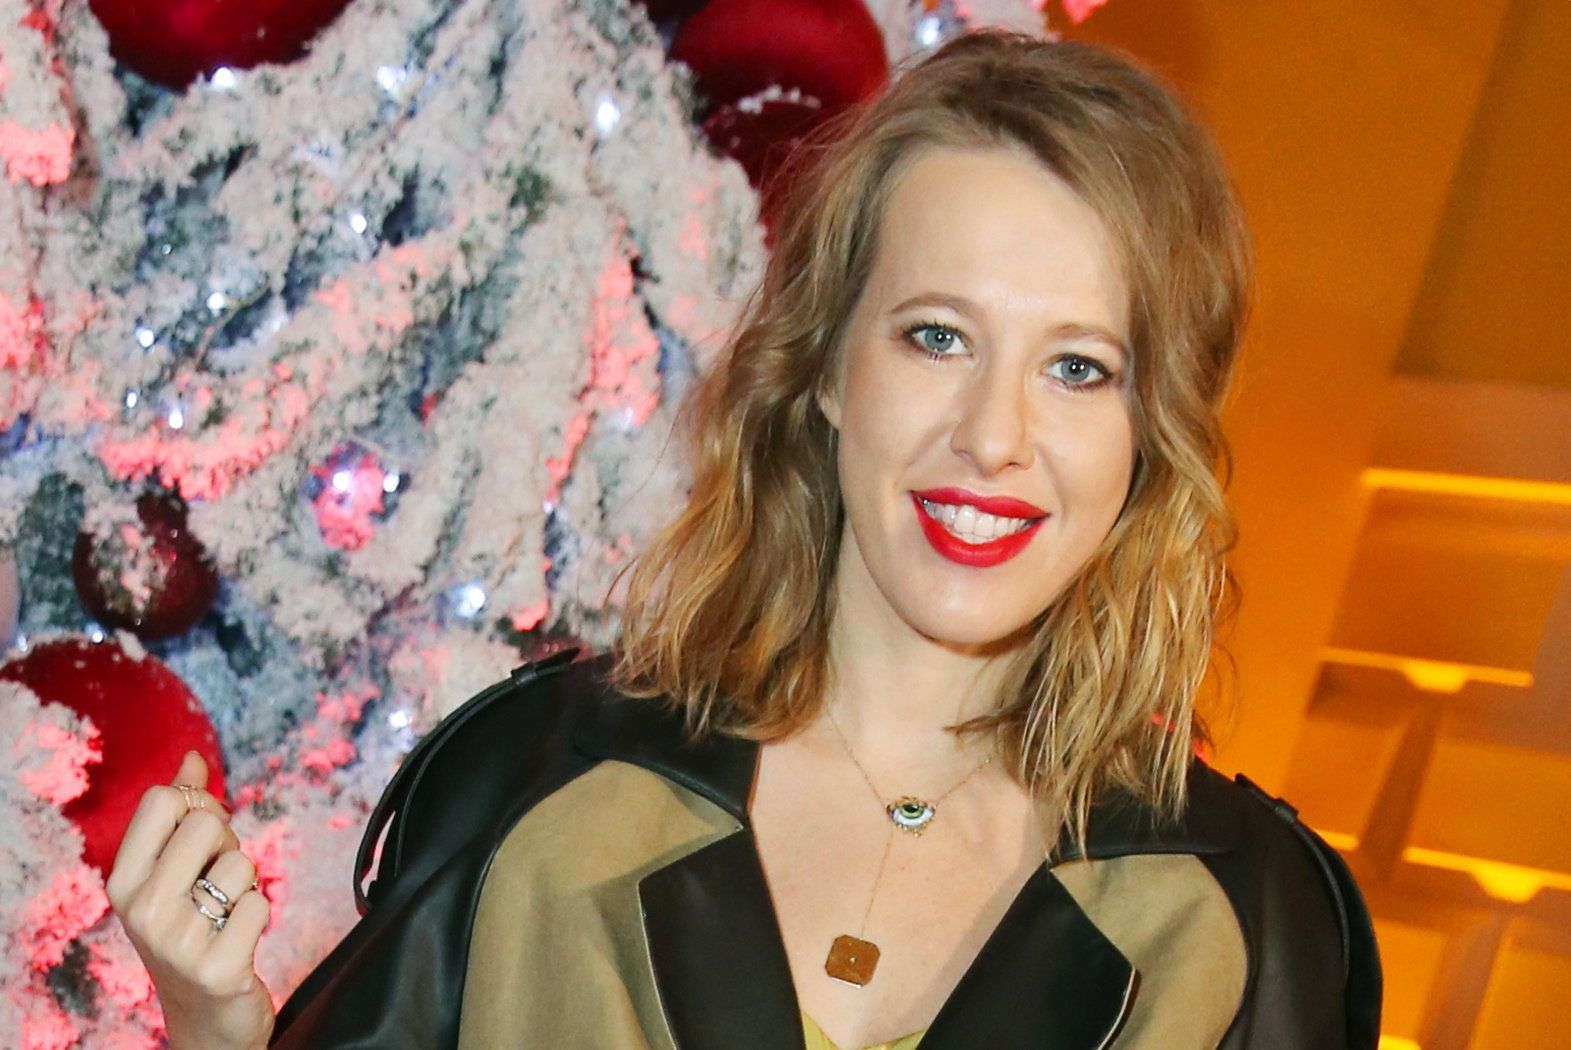 MOSCOW, RUSSIA - DECEMBER 9, 2016: Russian TV presenter and journalist Ksenia Sobchak attends the 2016 Glamour Women of the Year awards ceremony. Vyacheslav Prokofyev/TASS (Photo by Vyacheslav Prokofyev\TASS via Getty Images)